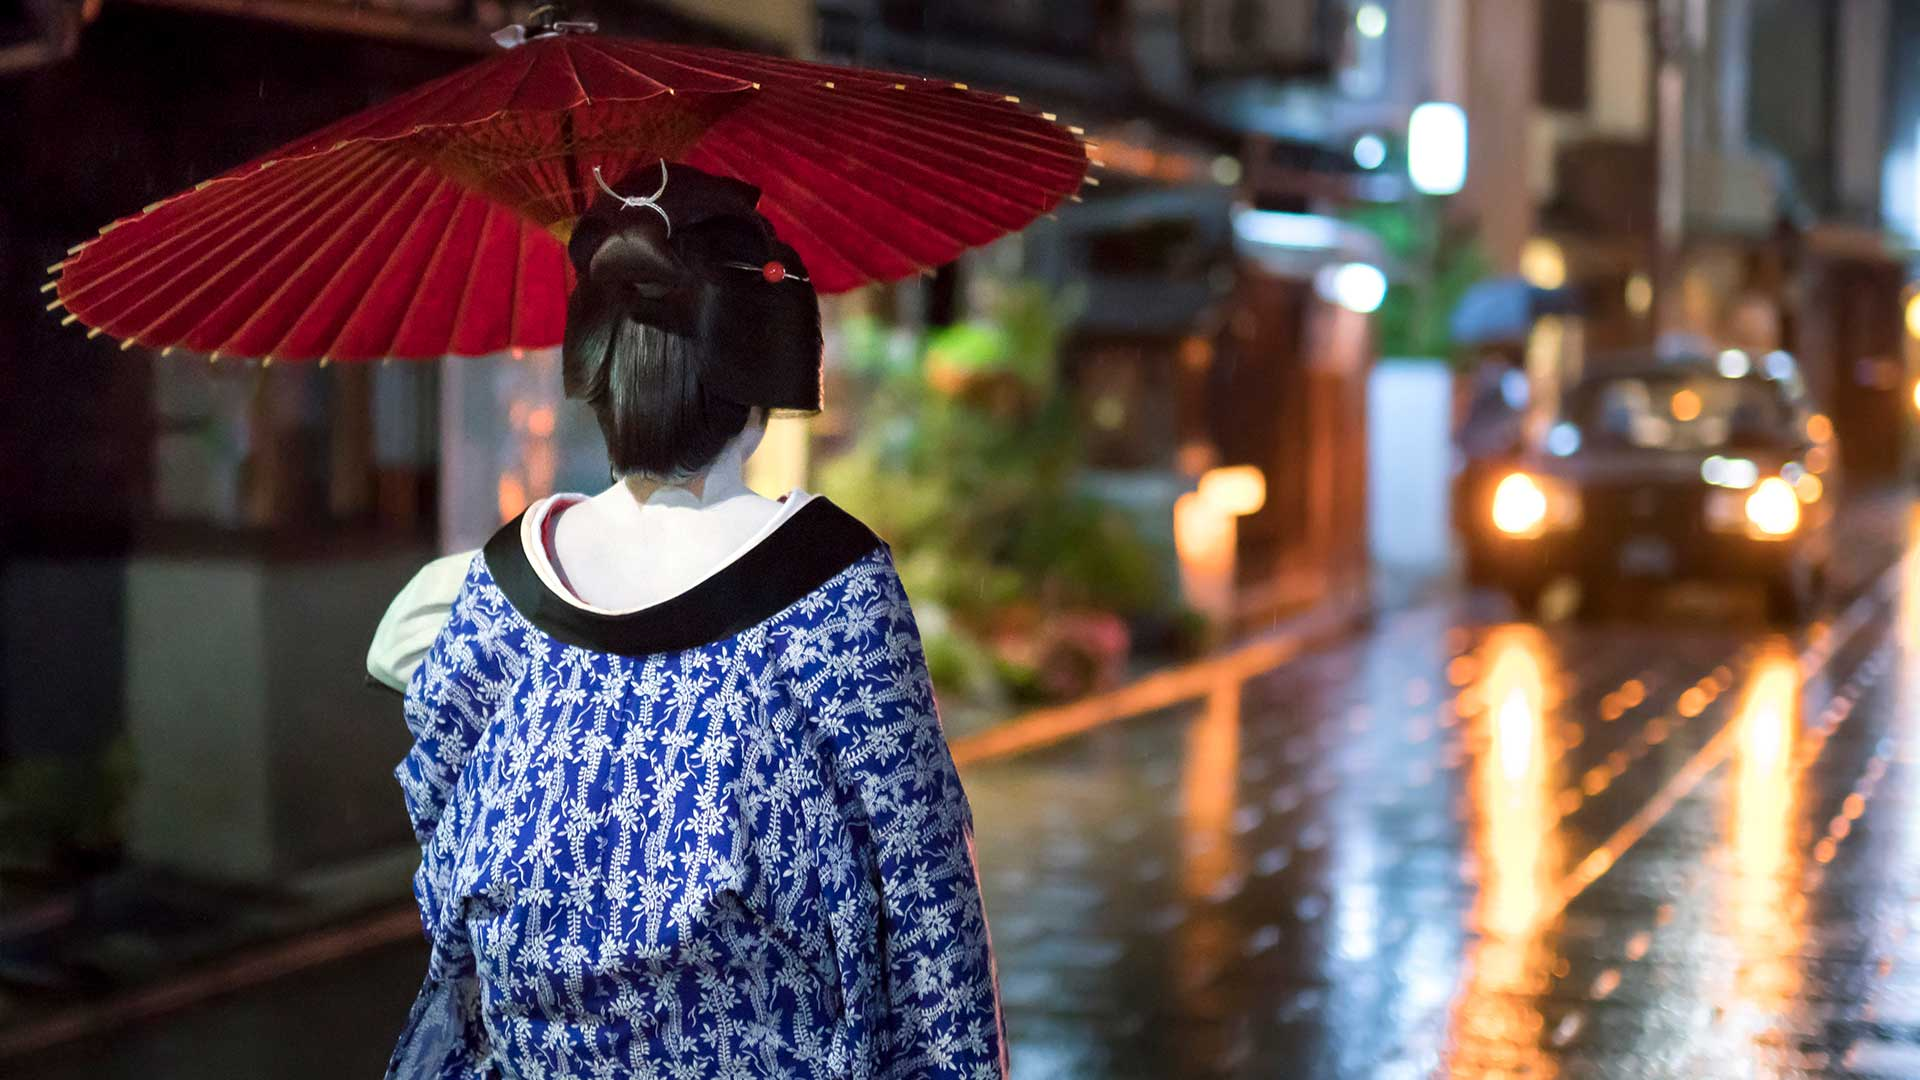 Maiko with umbrella walking along a street, Gion district, Kyoto, Japan